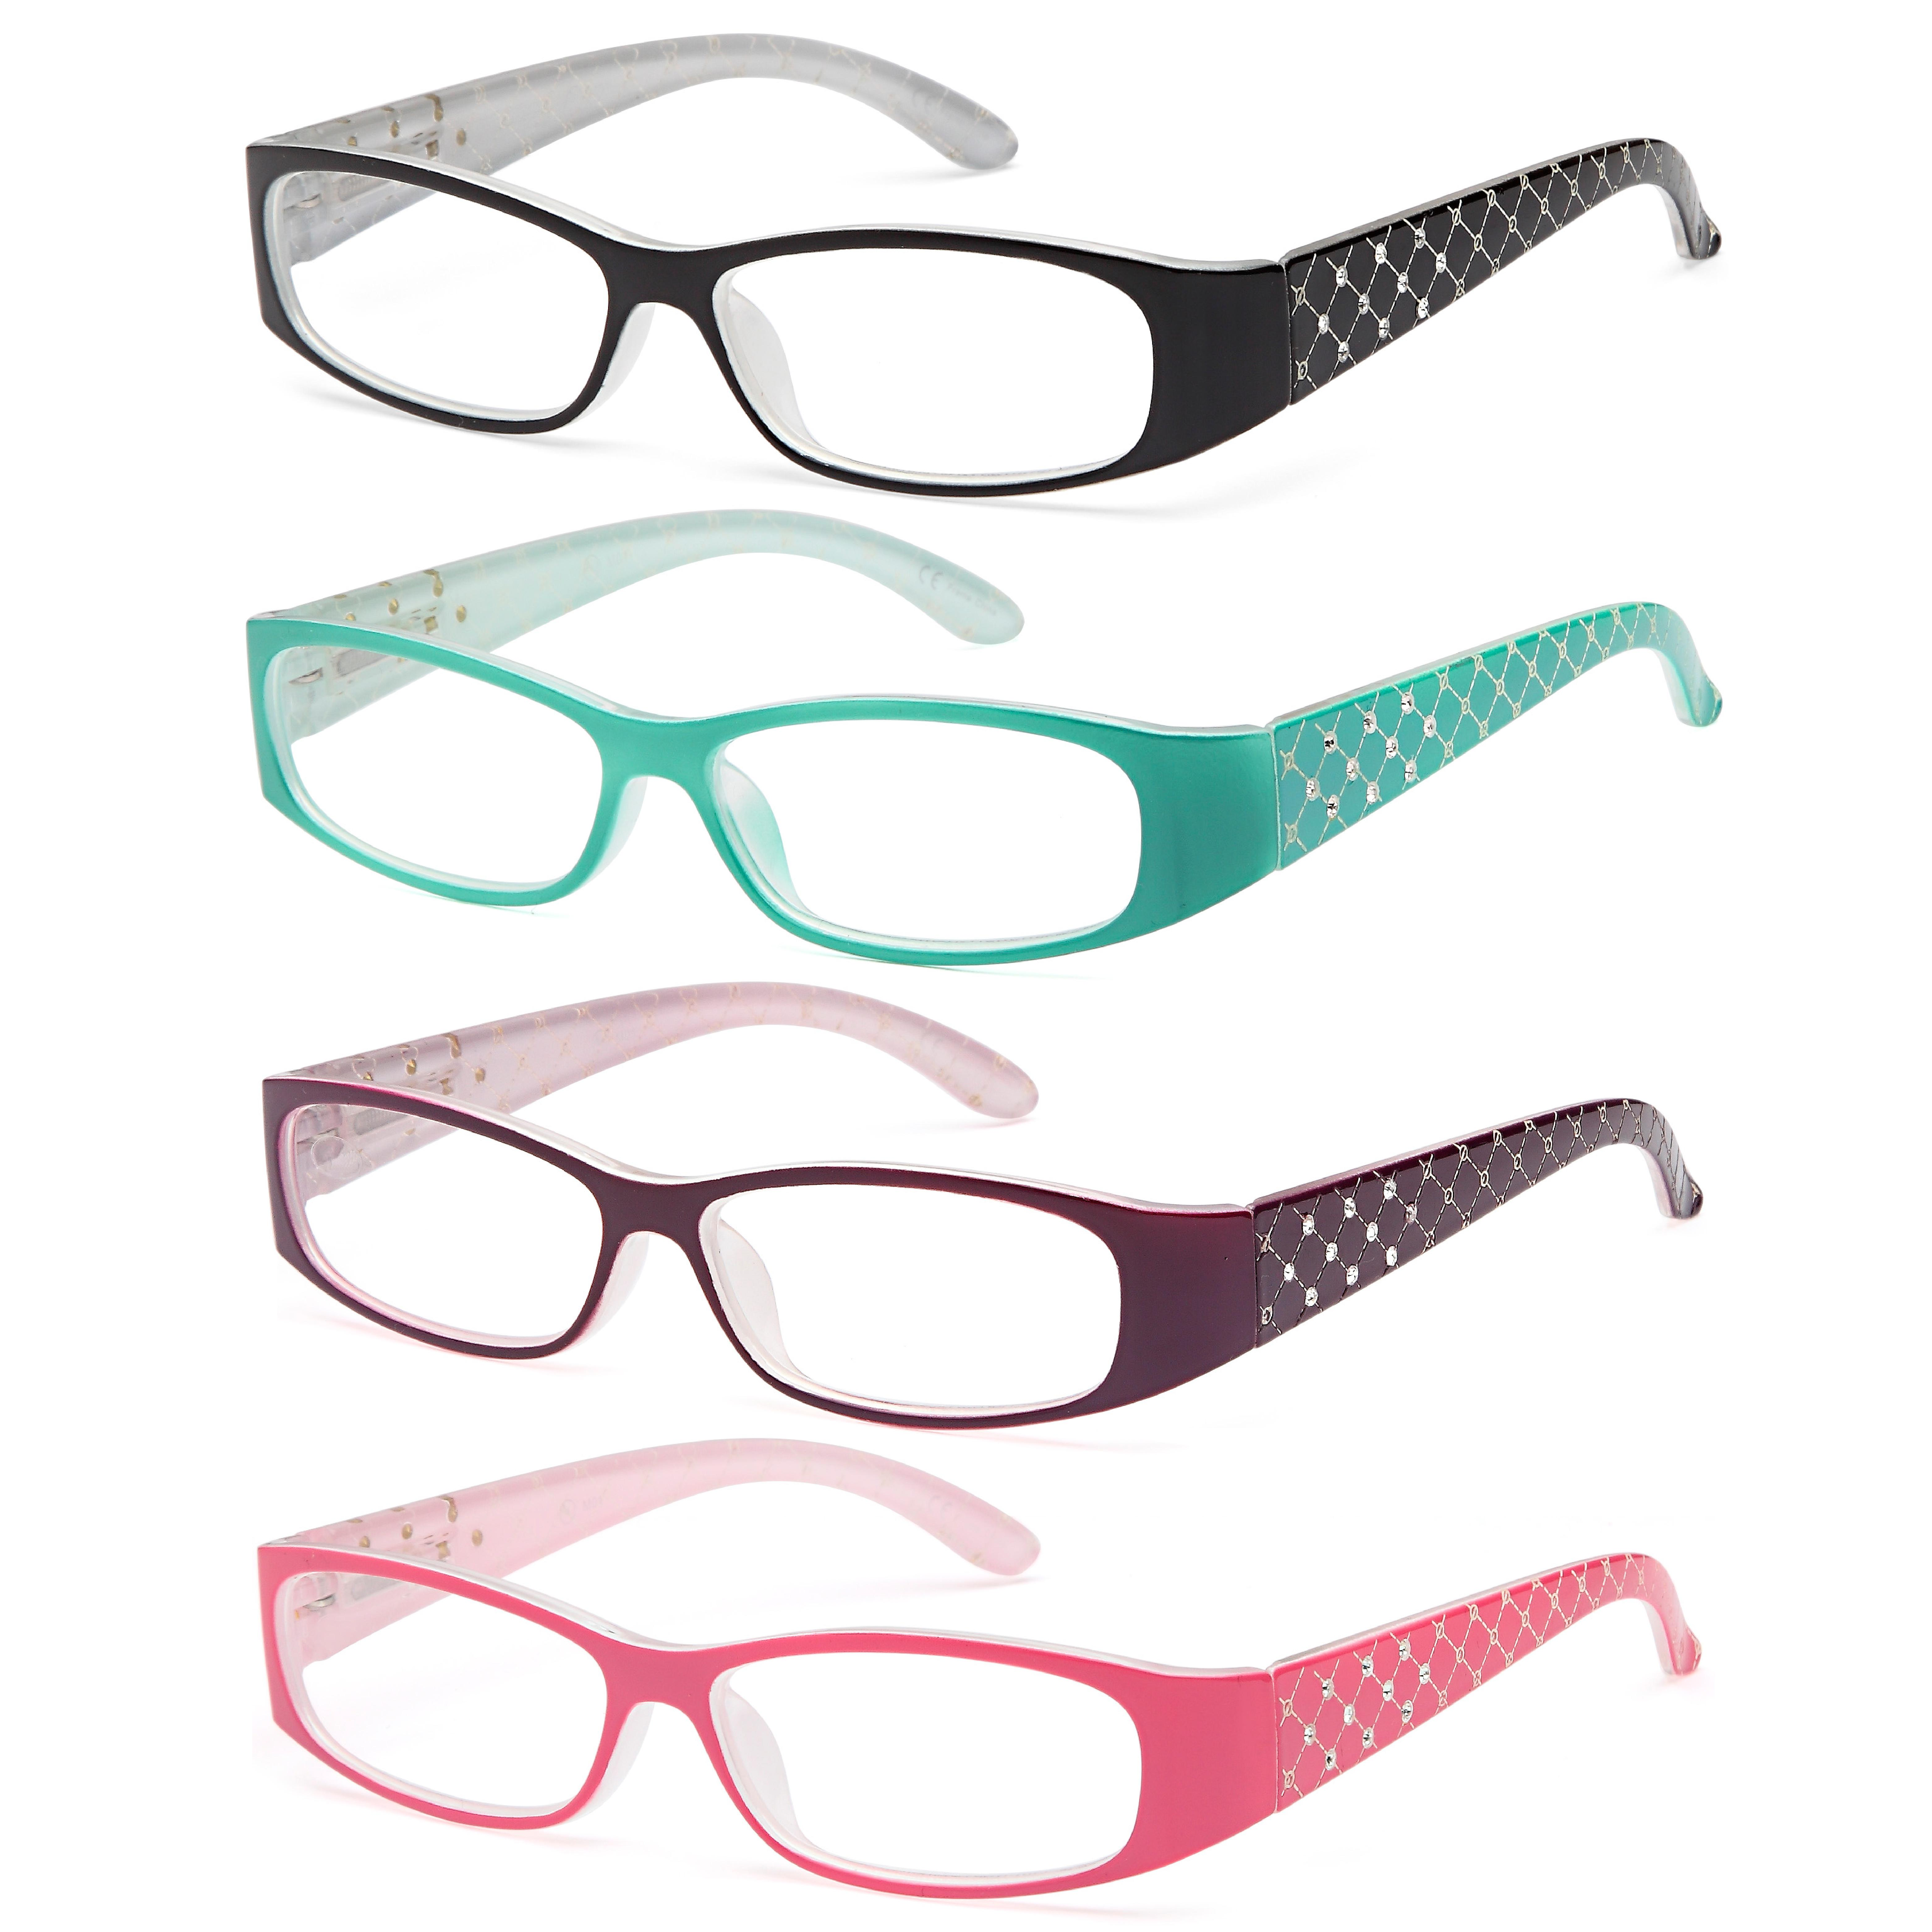 ALTEC VISION Pack of 4 Pattern Color Frame Readers Spring Hinge Reading Glasses for Women +1.00